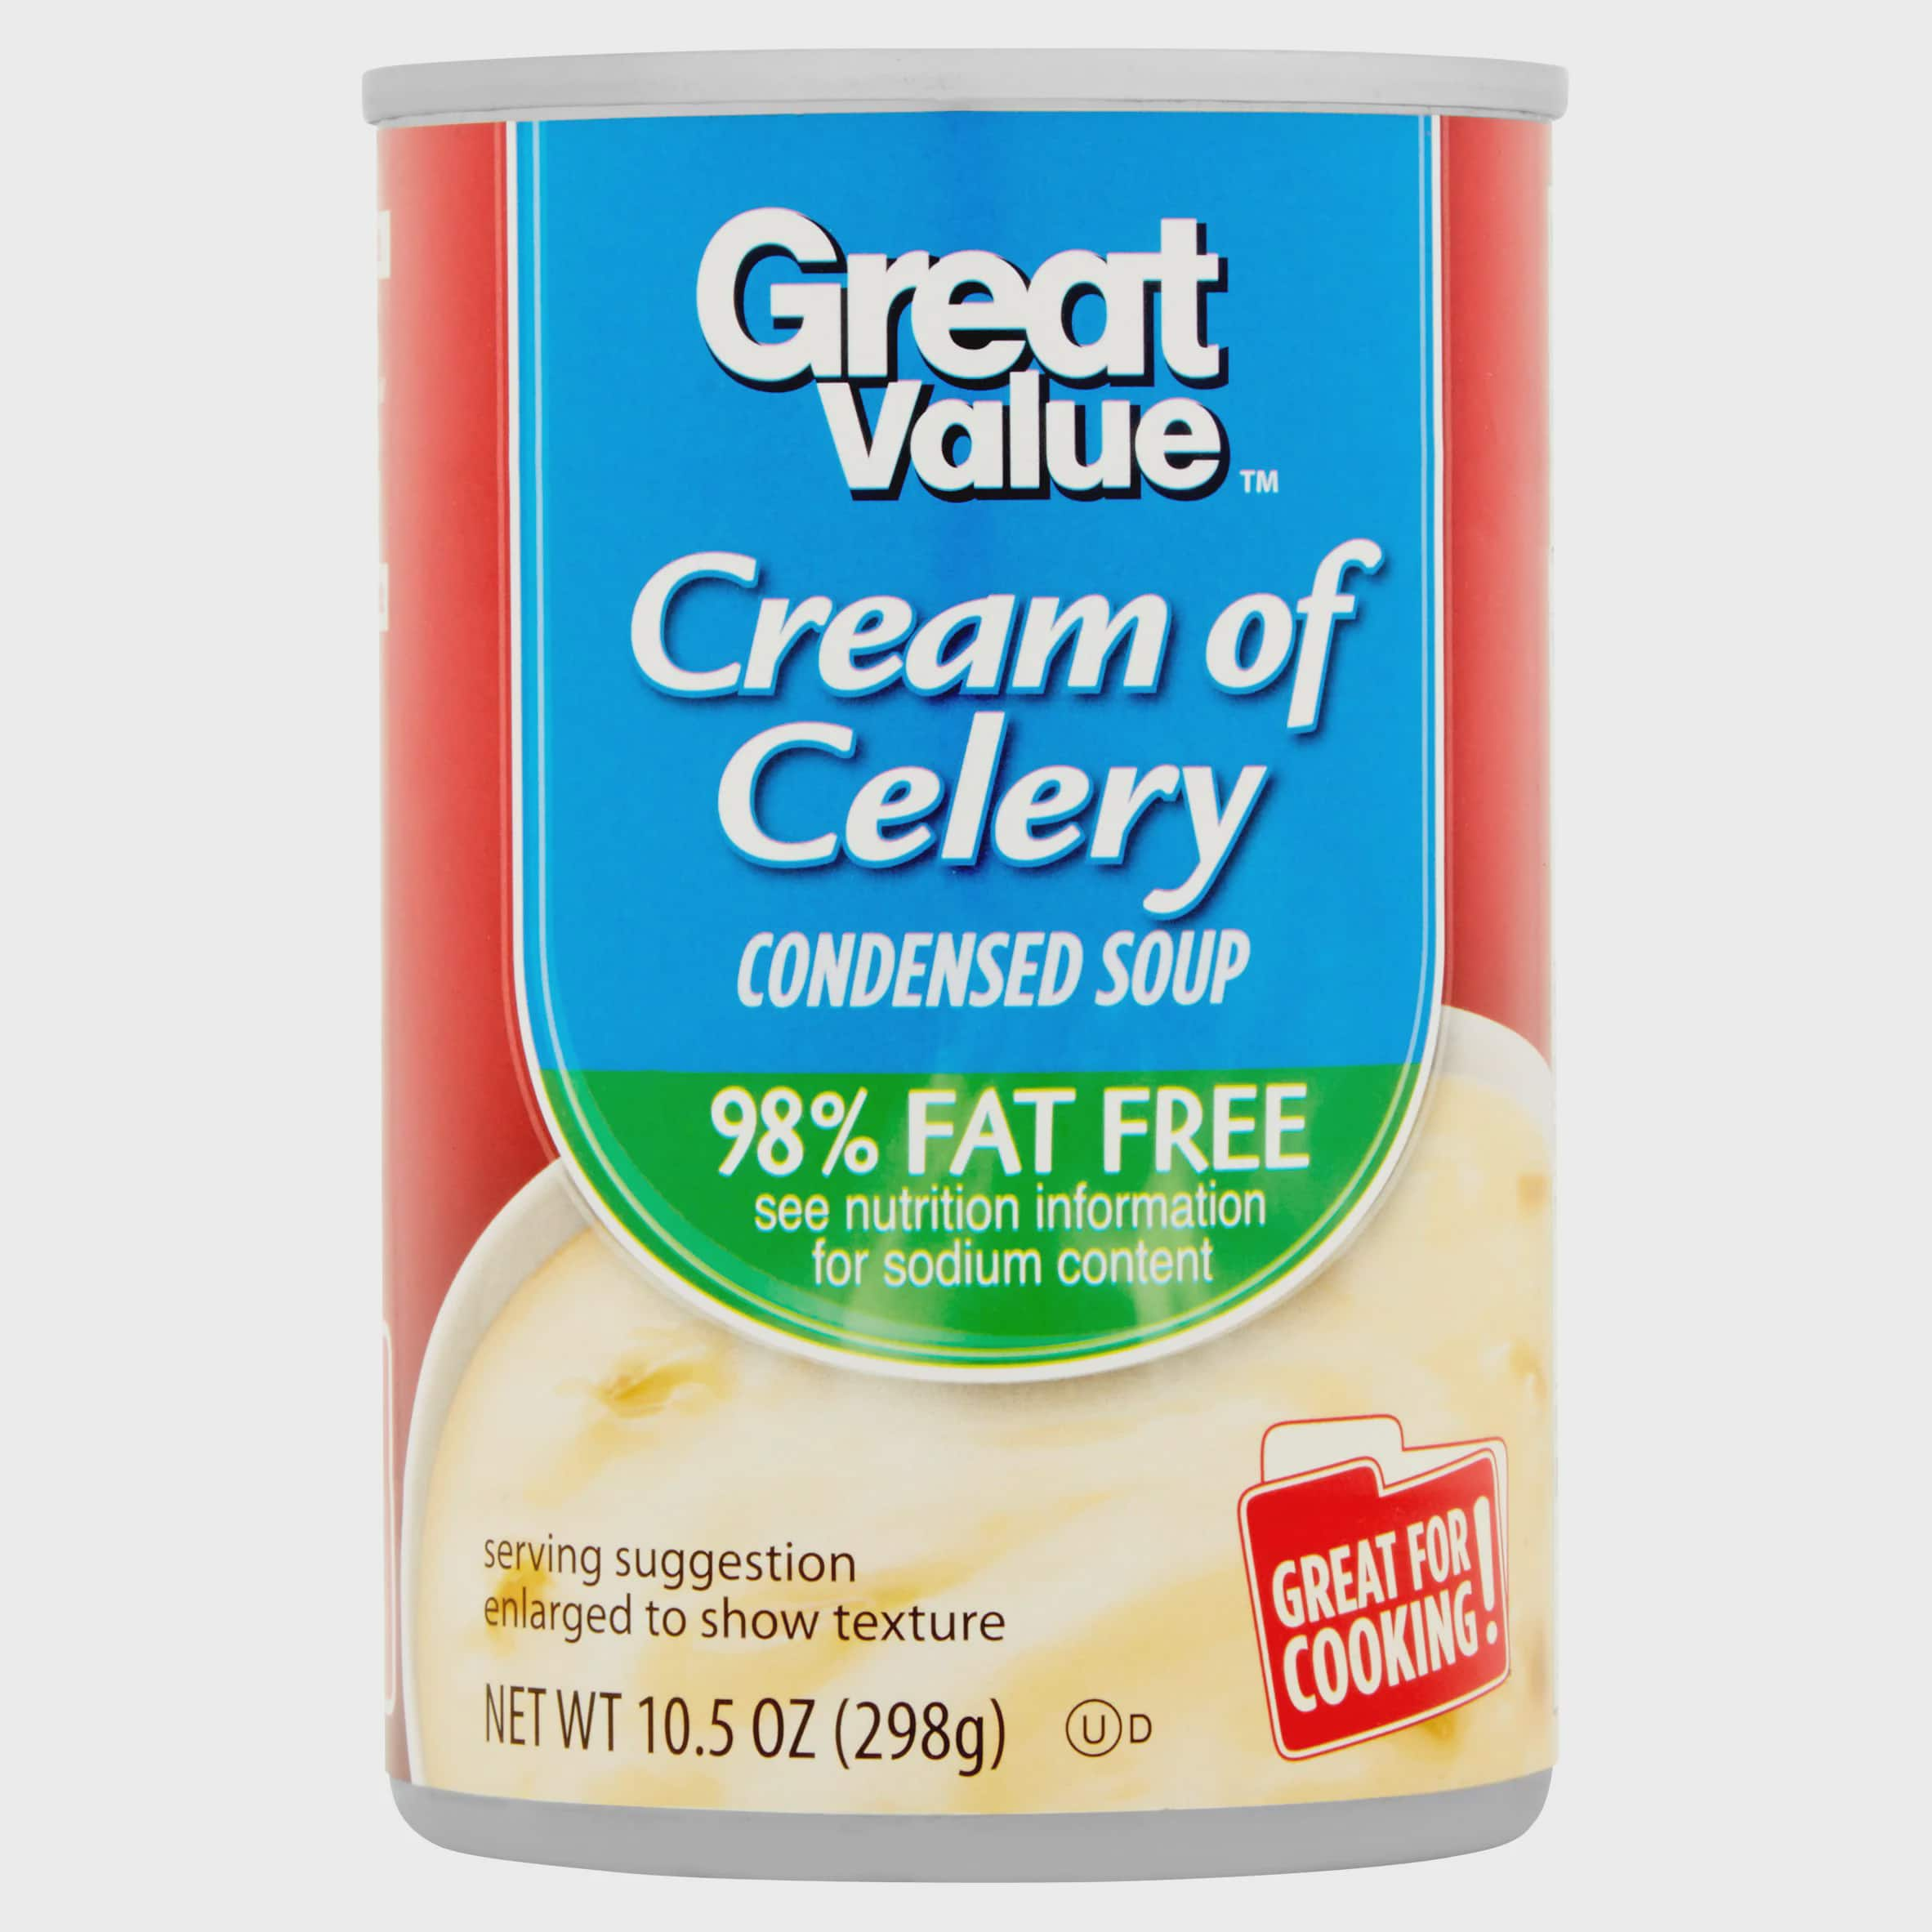 Great Value 98% Fat Free Cream Of Celery Condensed Soup, 10.5 oz